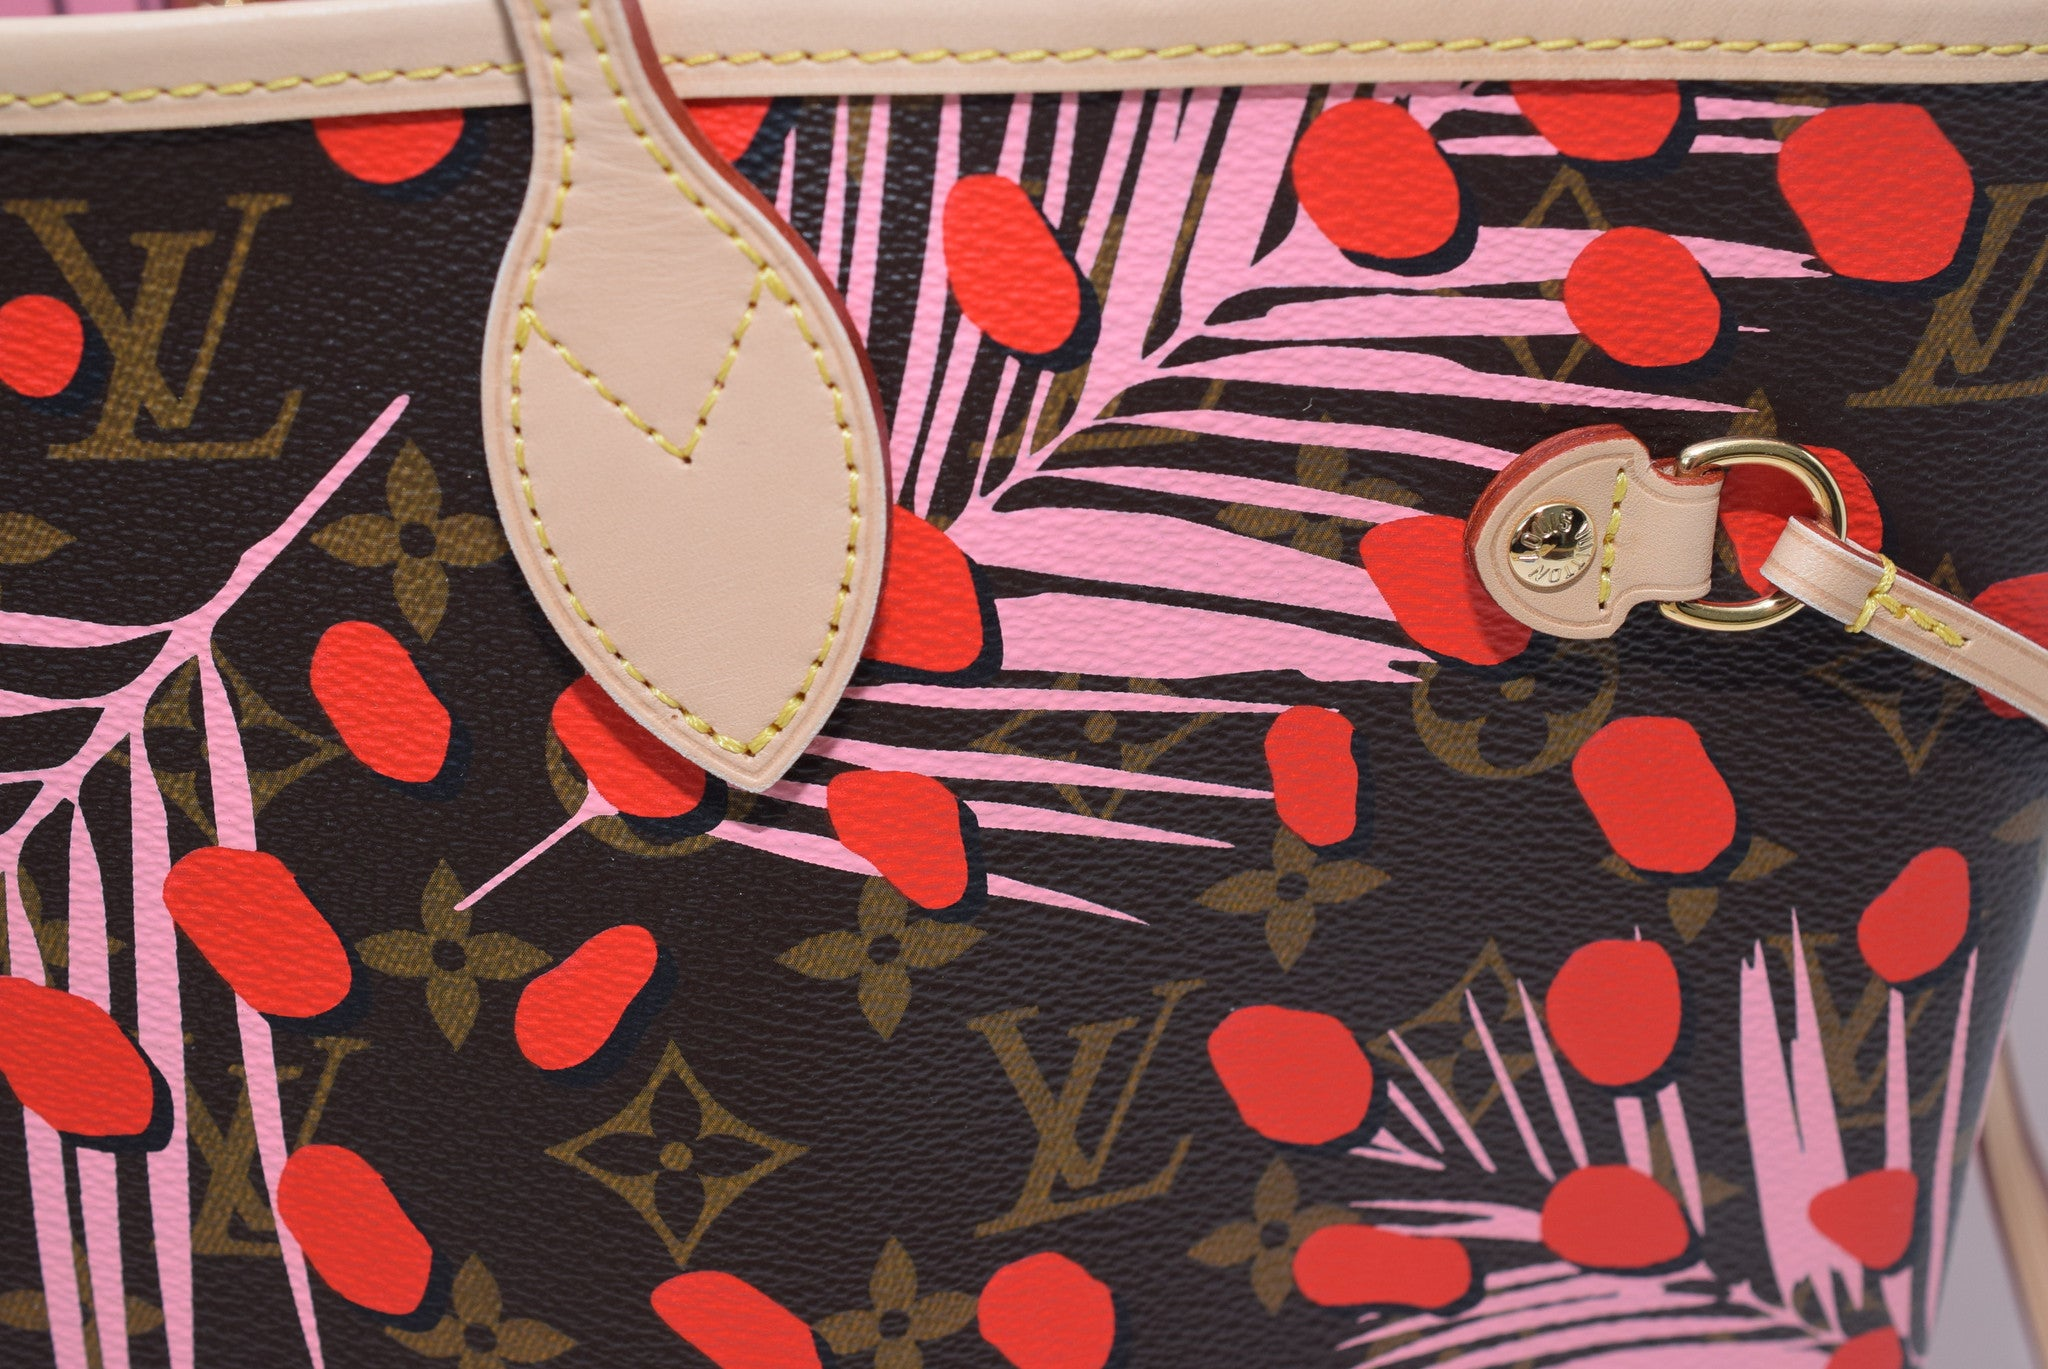 4c5169f7341 LOUIS VUITTON Brand New 2016! Neverfull Mm In Limited Edition Tropical  Journey Collection For Summer 2016 M41979 Shoulder Bag